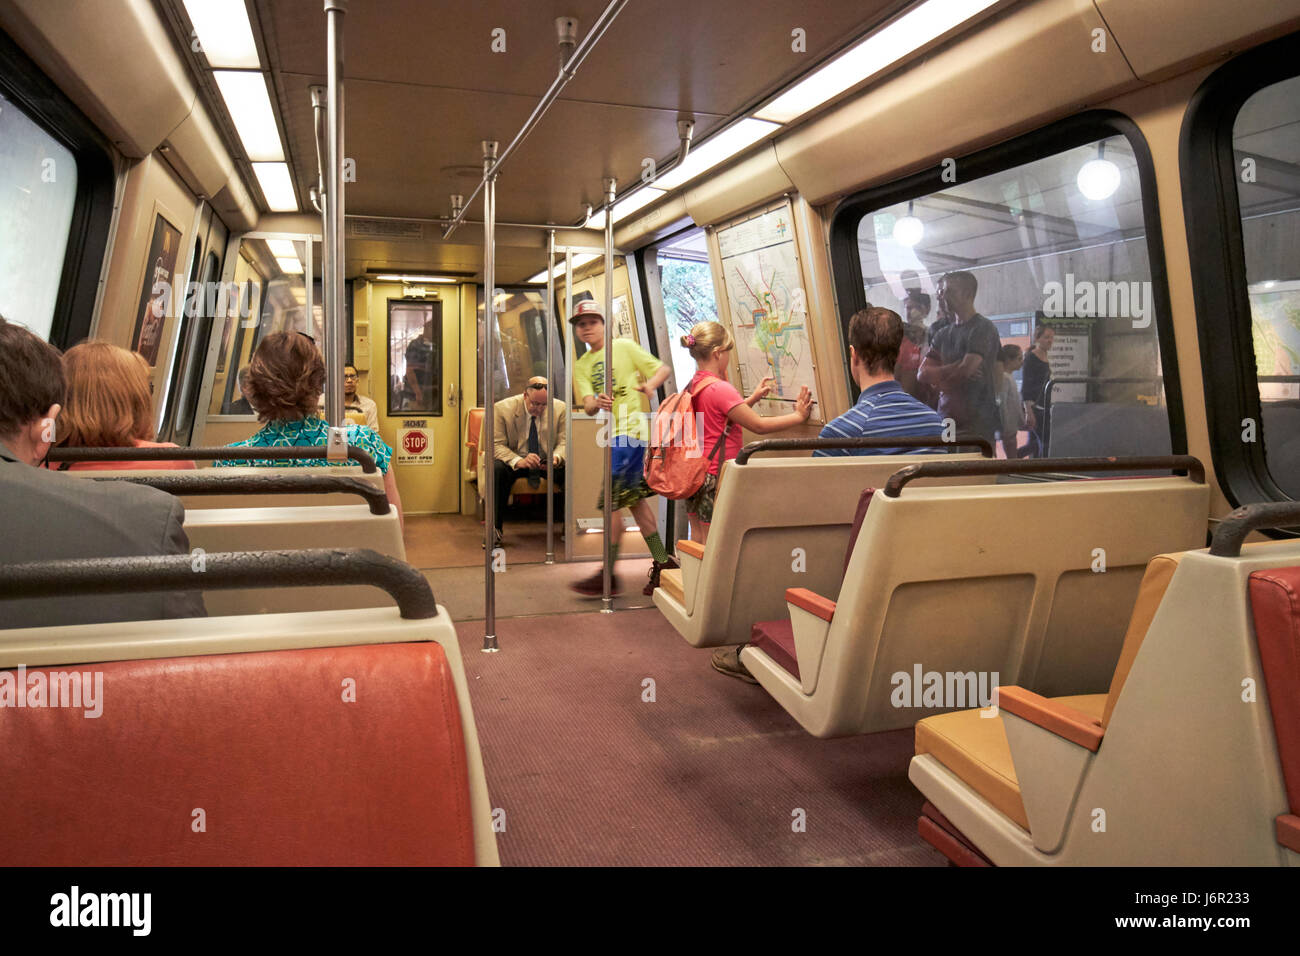 inside old 4000 series breda car metro underground train system stock photo royalty free image. Black Bedroom Furniture Sets. Home Design Ideas